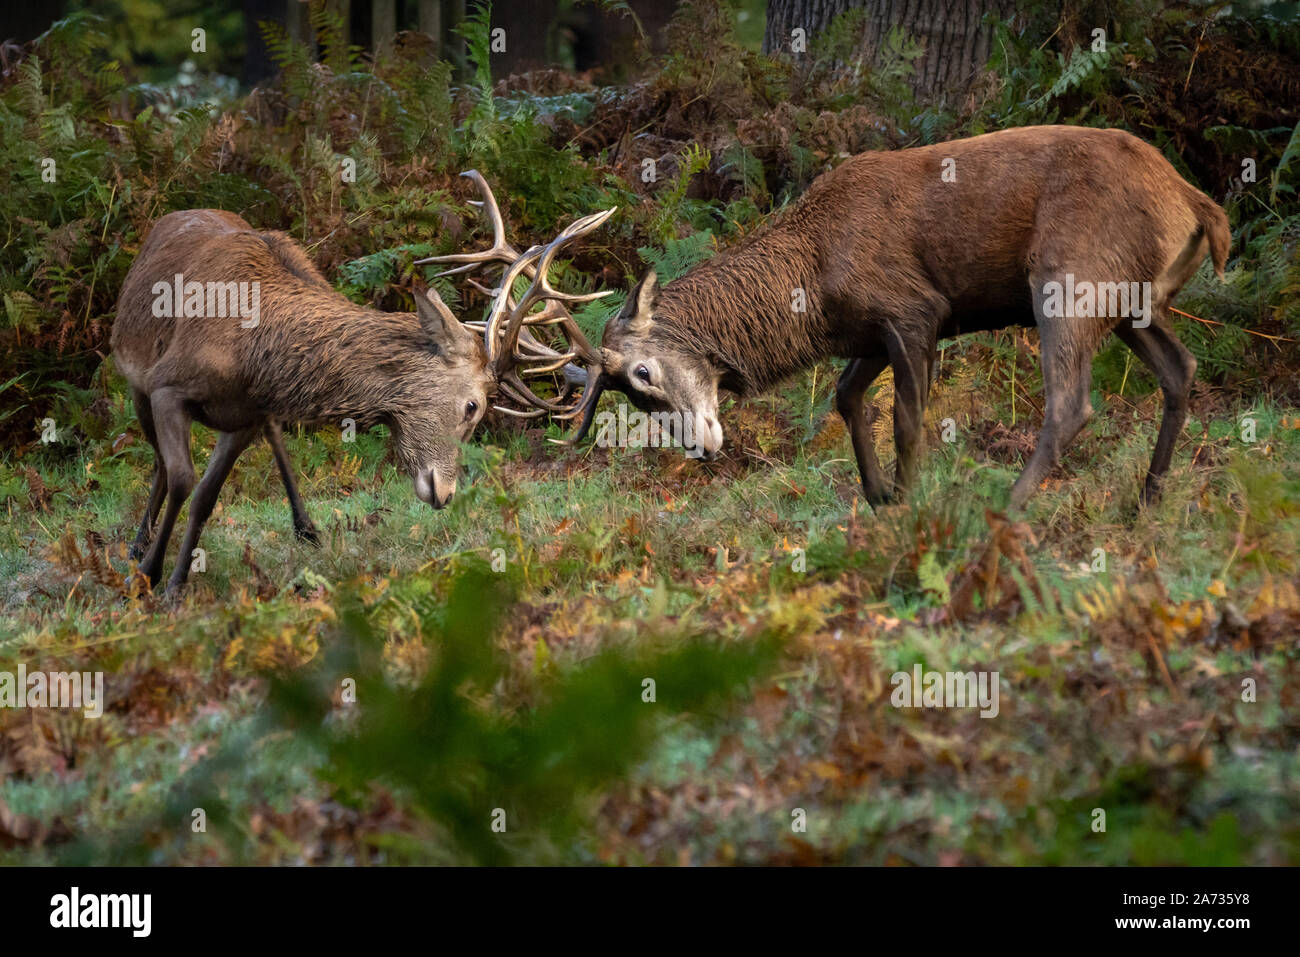 London, UK. 27th Oct 2019. Red deer stag battle for mating rights as rutting season begins in Richmond Park, where over 600 deer roam freely. During t Stock Photo